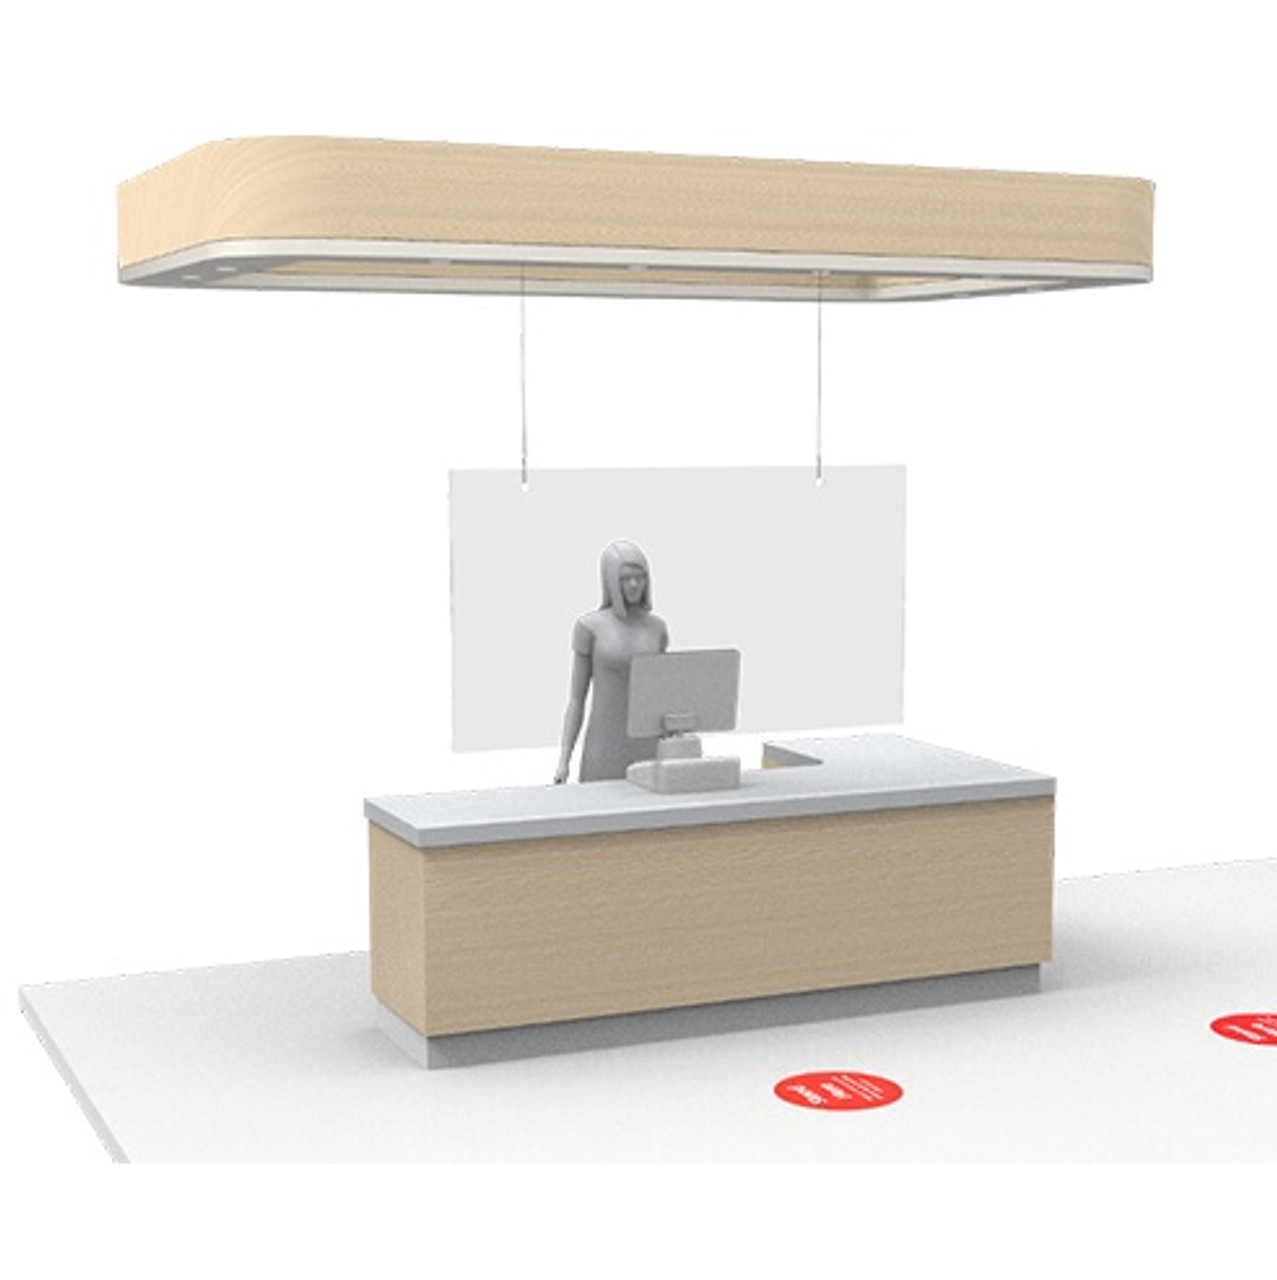 Hanging-safety-barrier-for-registers-to-protect-employees-and-customers